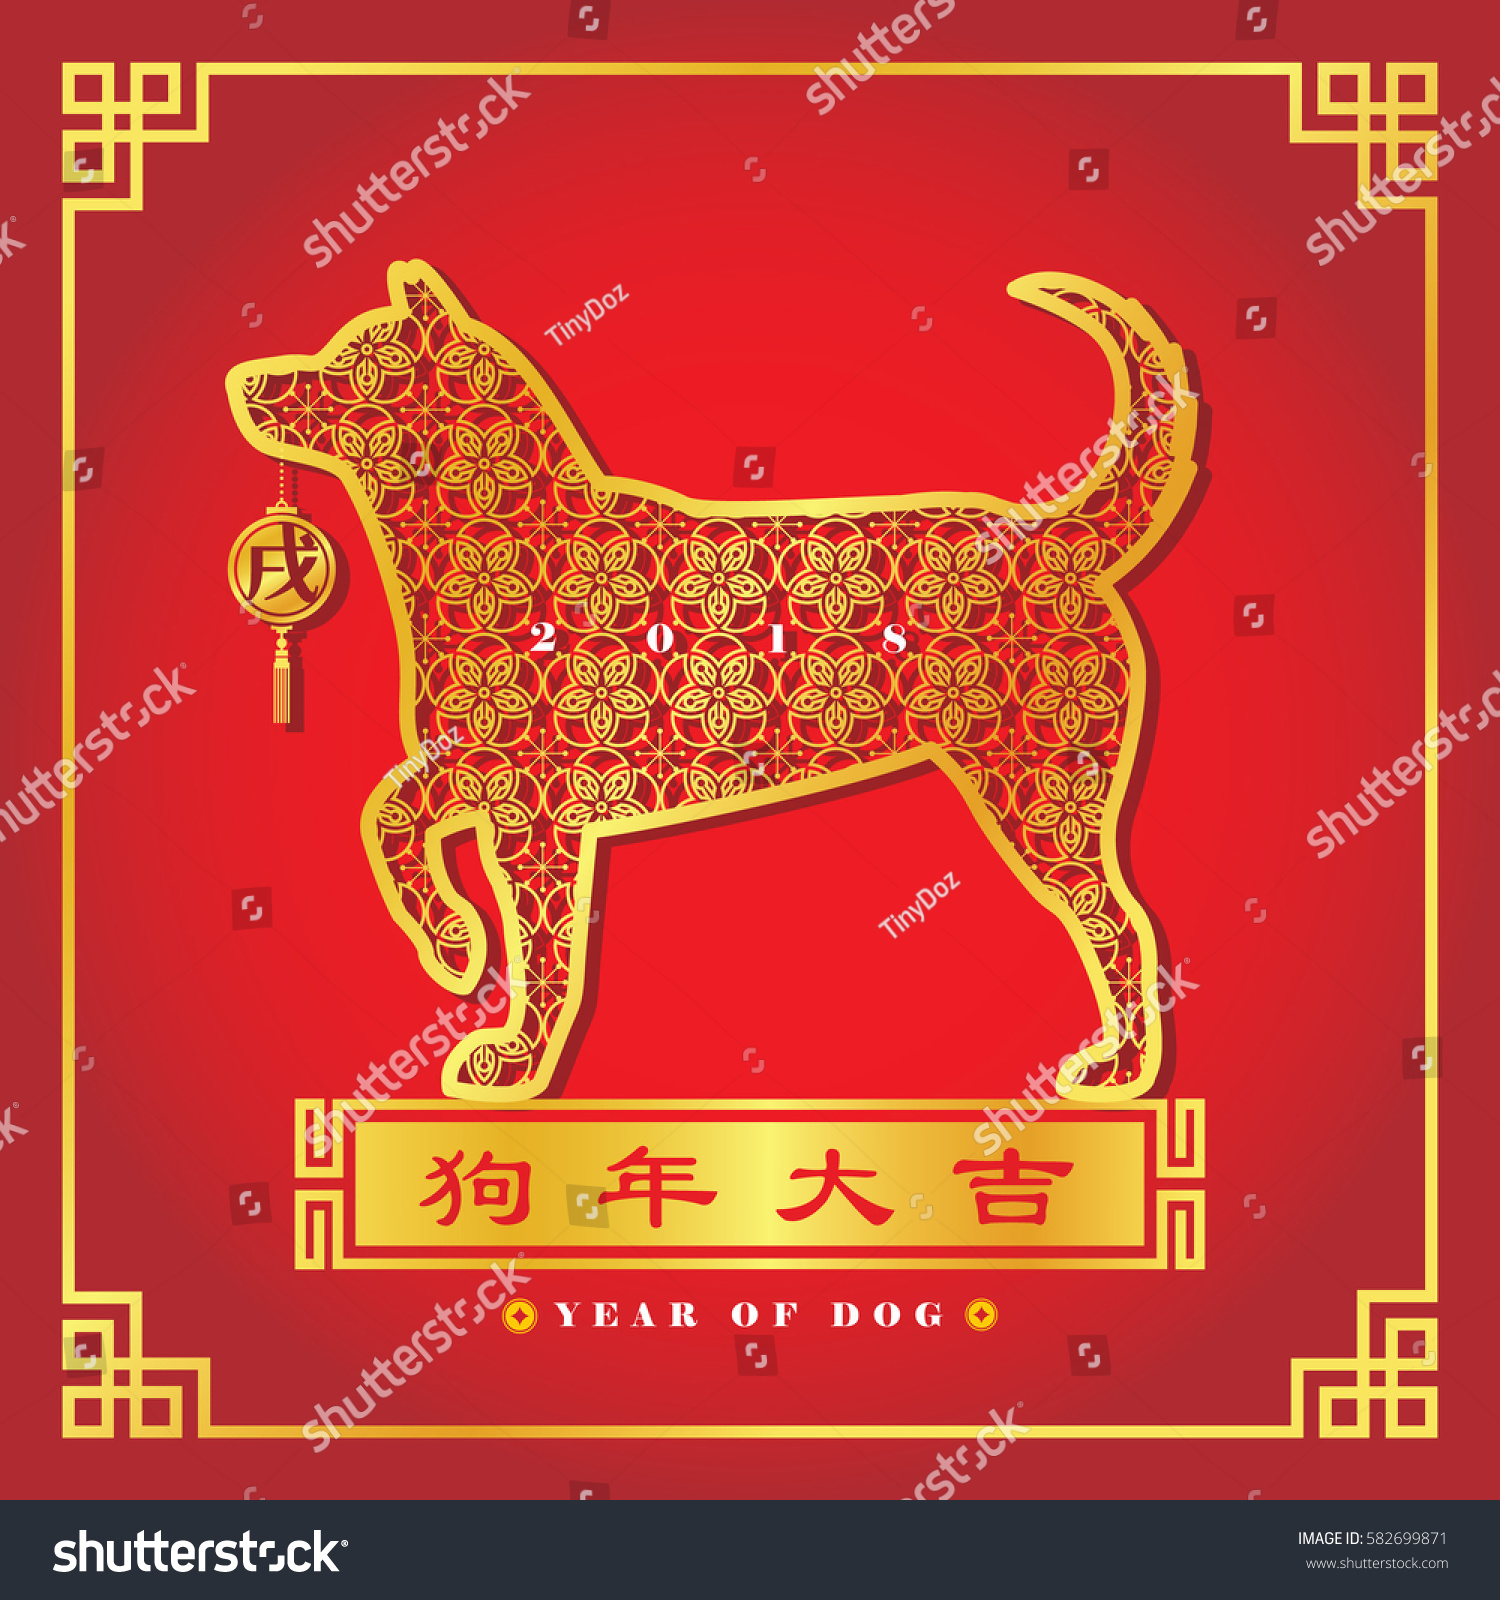 2018 Year Dog Chinese New Year Stock Vector Royalty Free 582699871